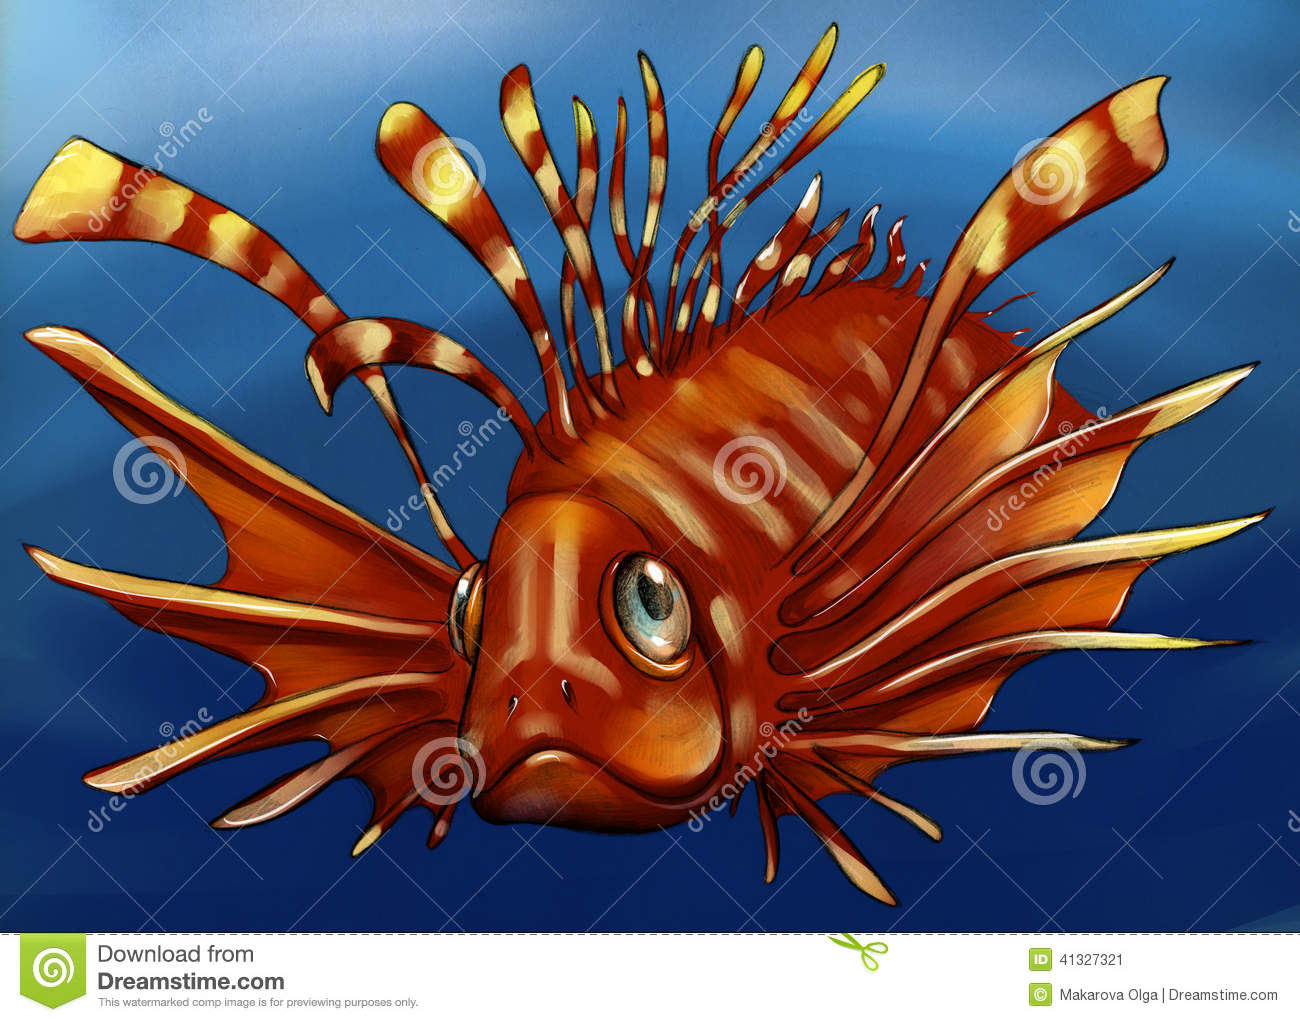 Exotic Poisonous Fish Sketch Stock Illustration - Illustration of ...